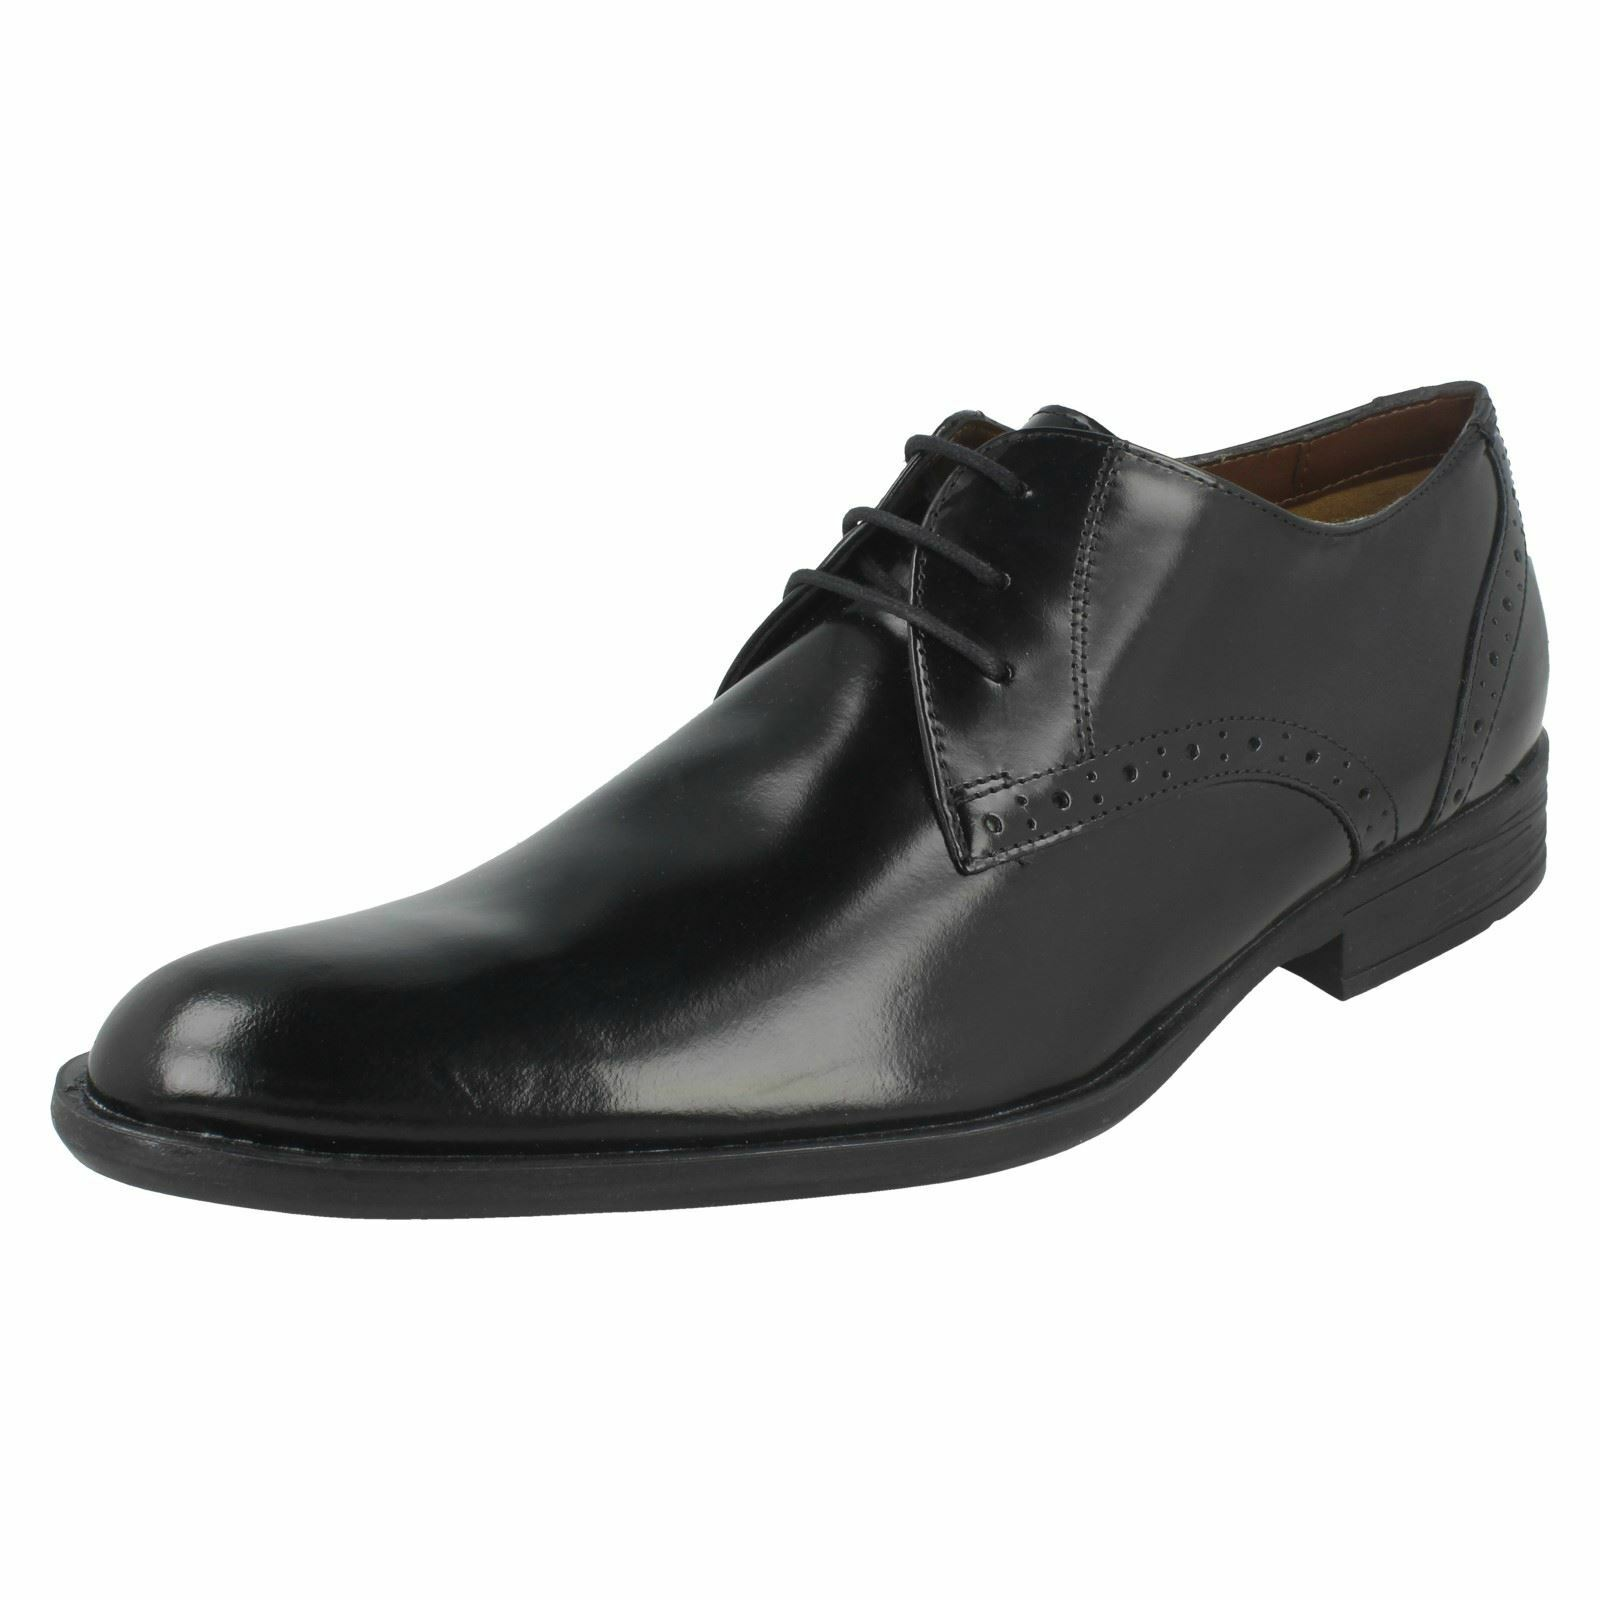 Hush Puppies Puppies Puppies Mens Lace Up Formal schuhe - Kensington 2ef8a2